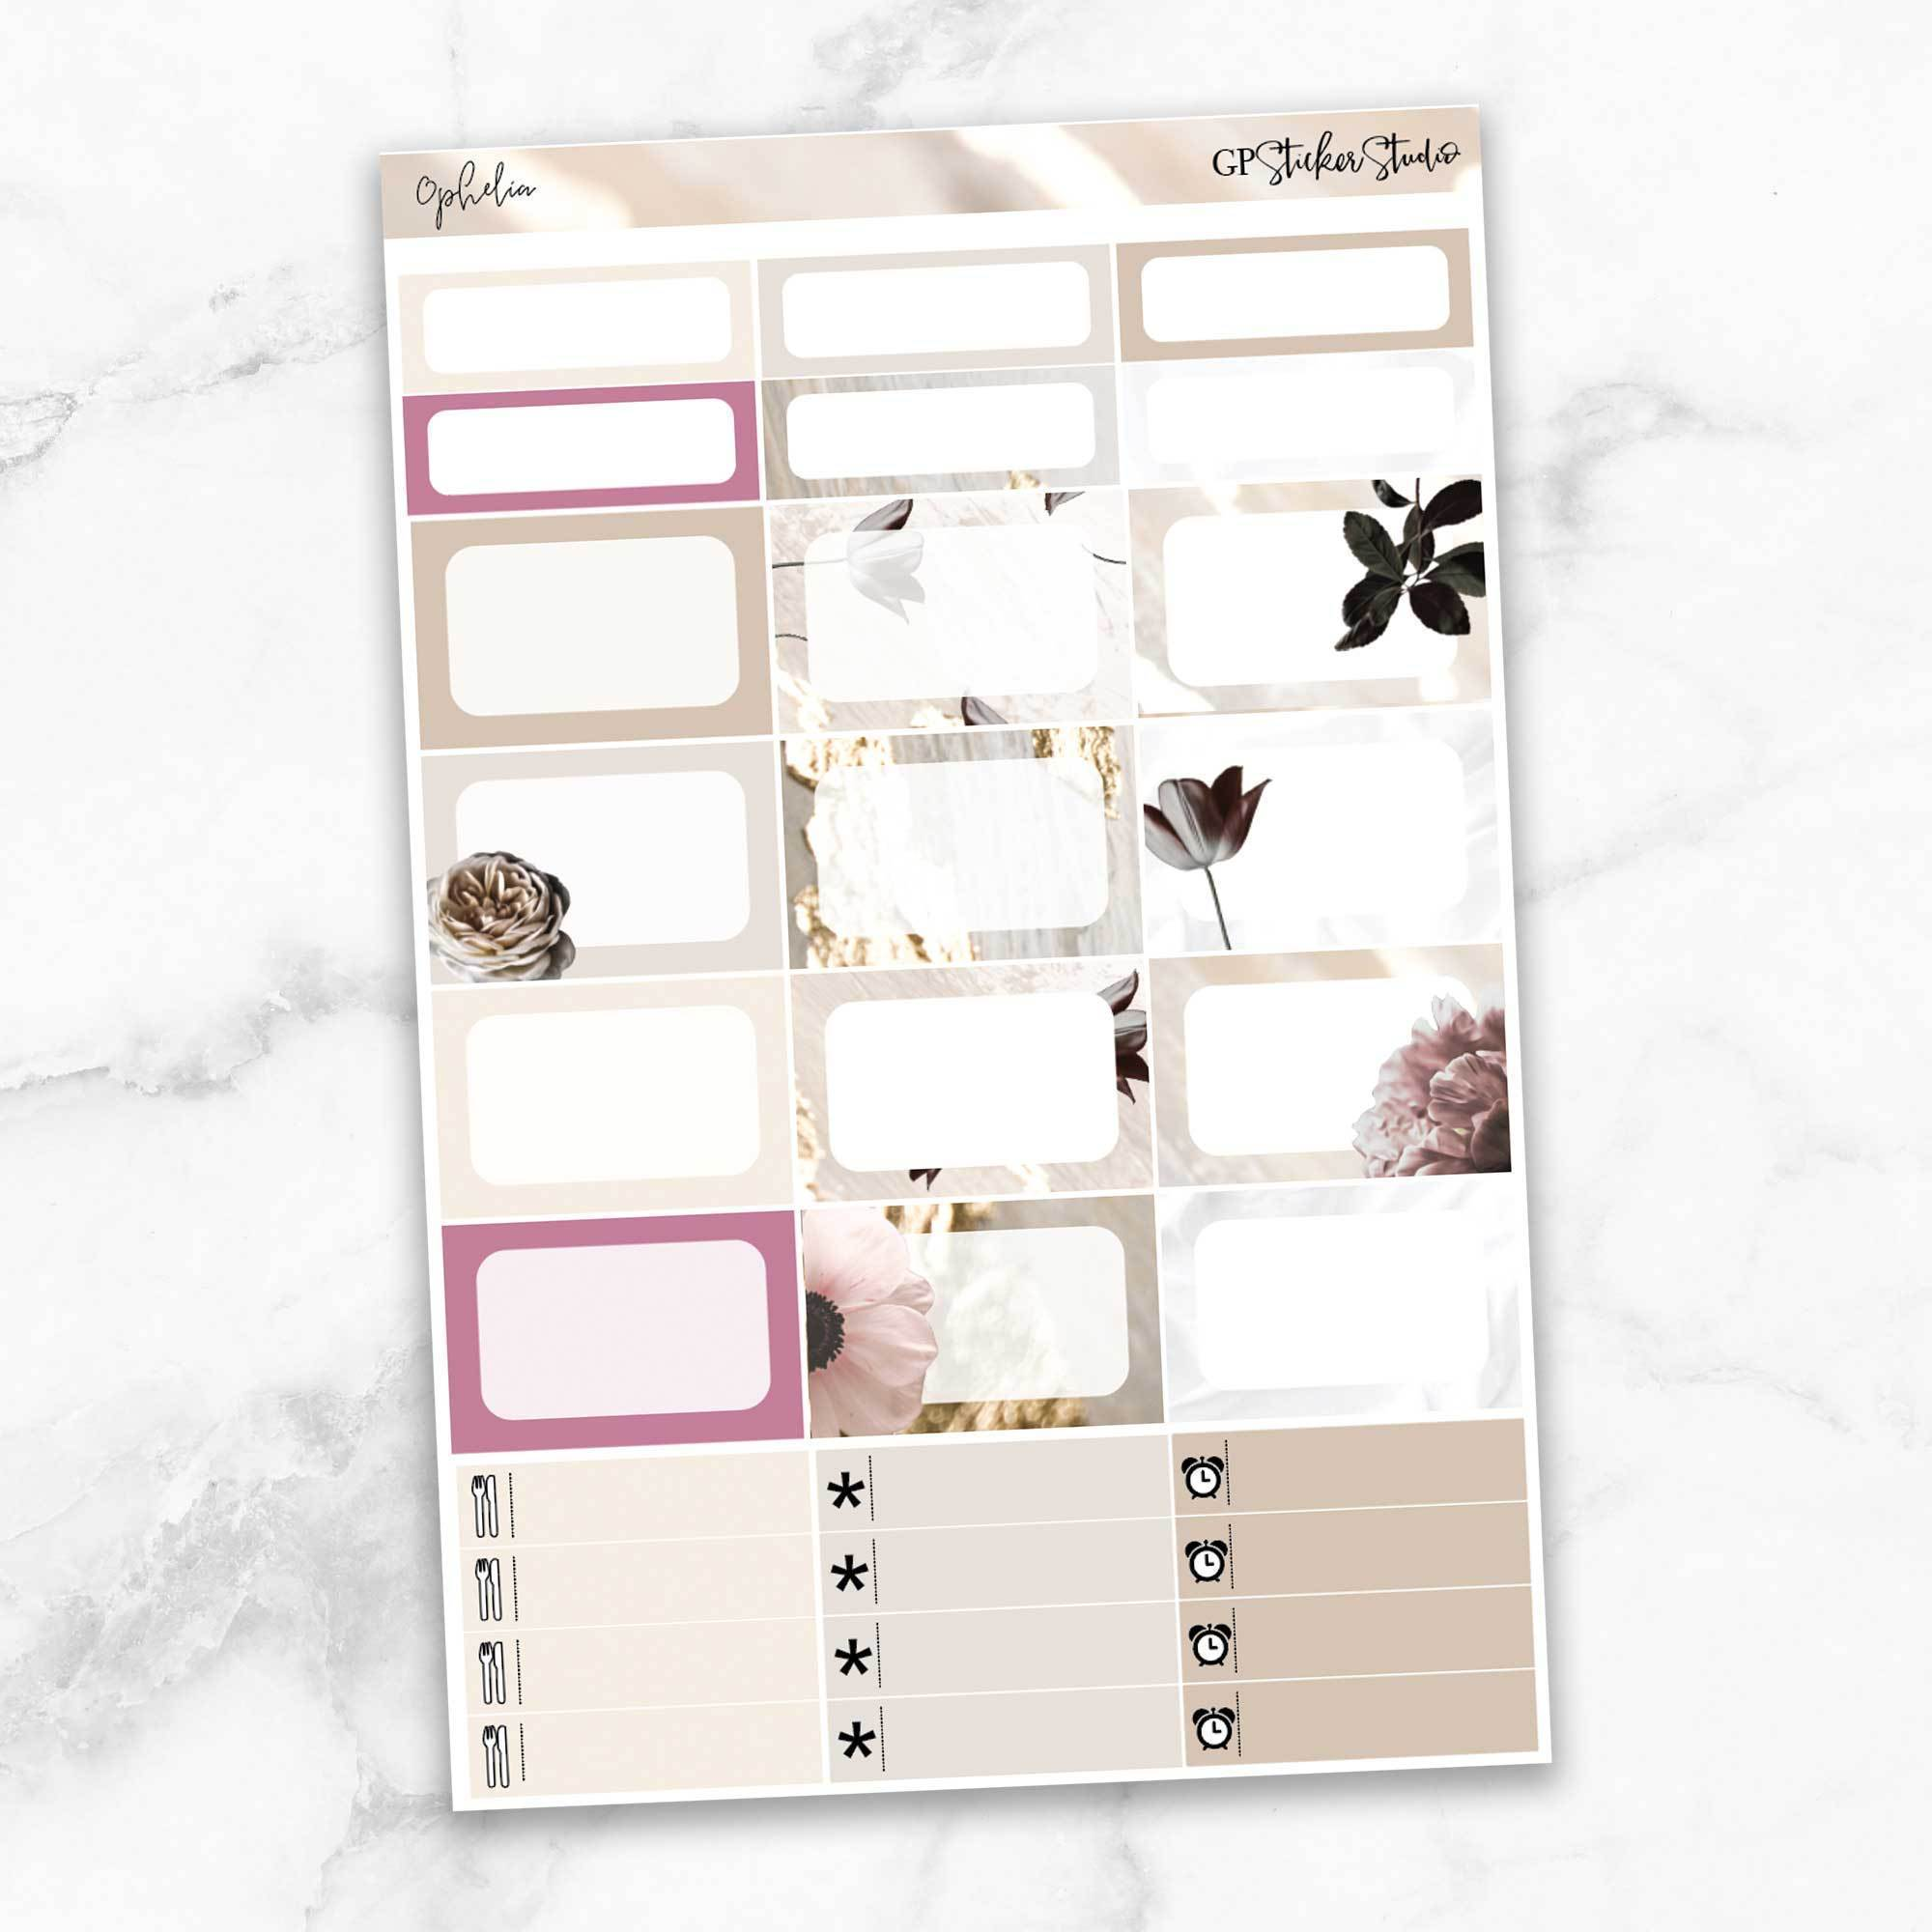 OPHELIA Half Boxes Planner Stickers-The GP Studio